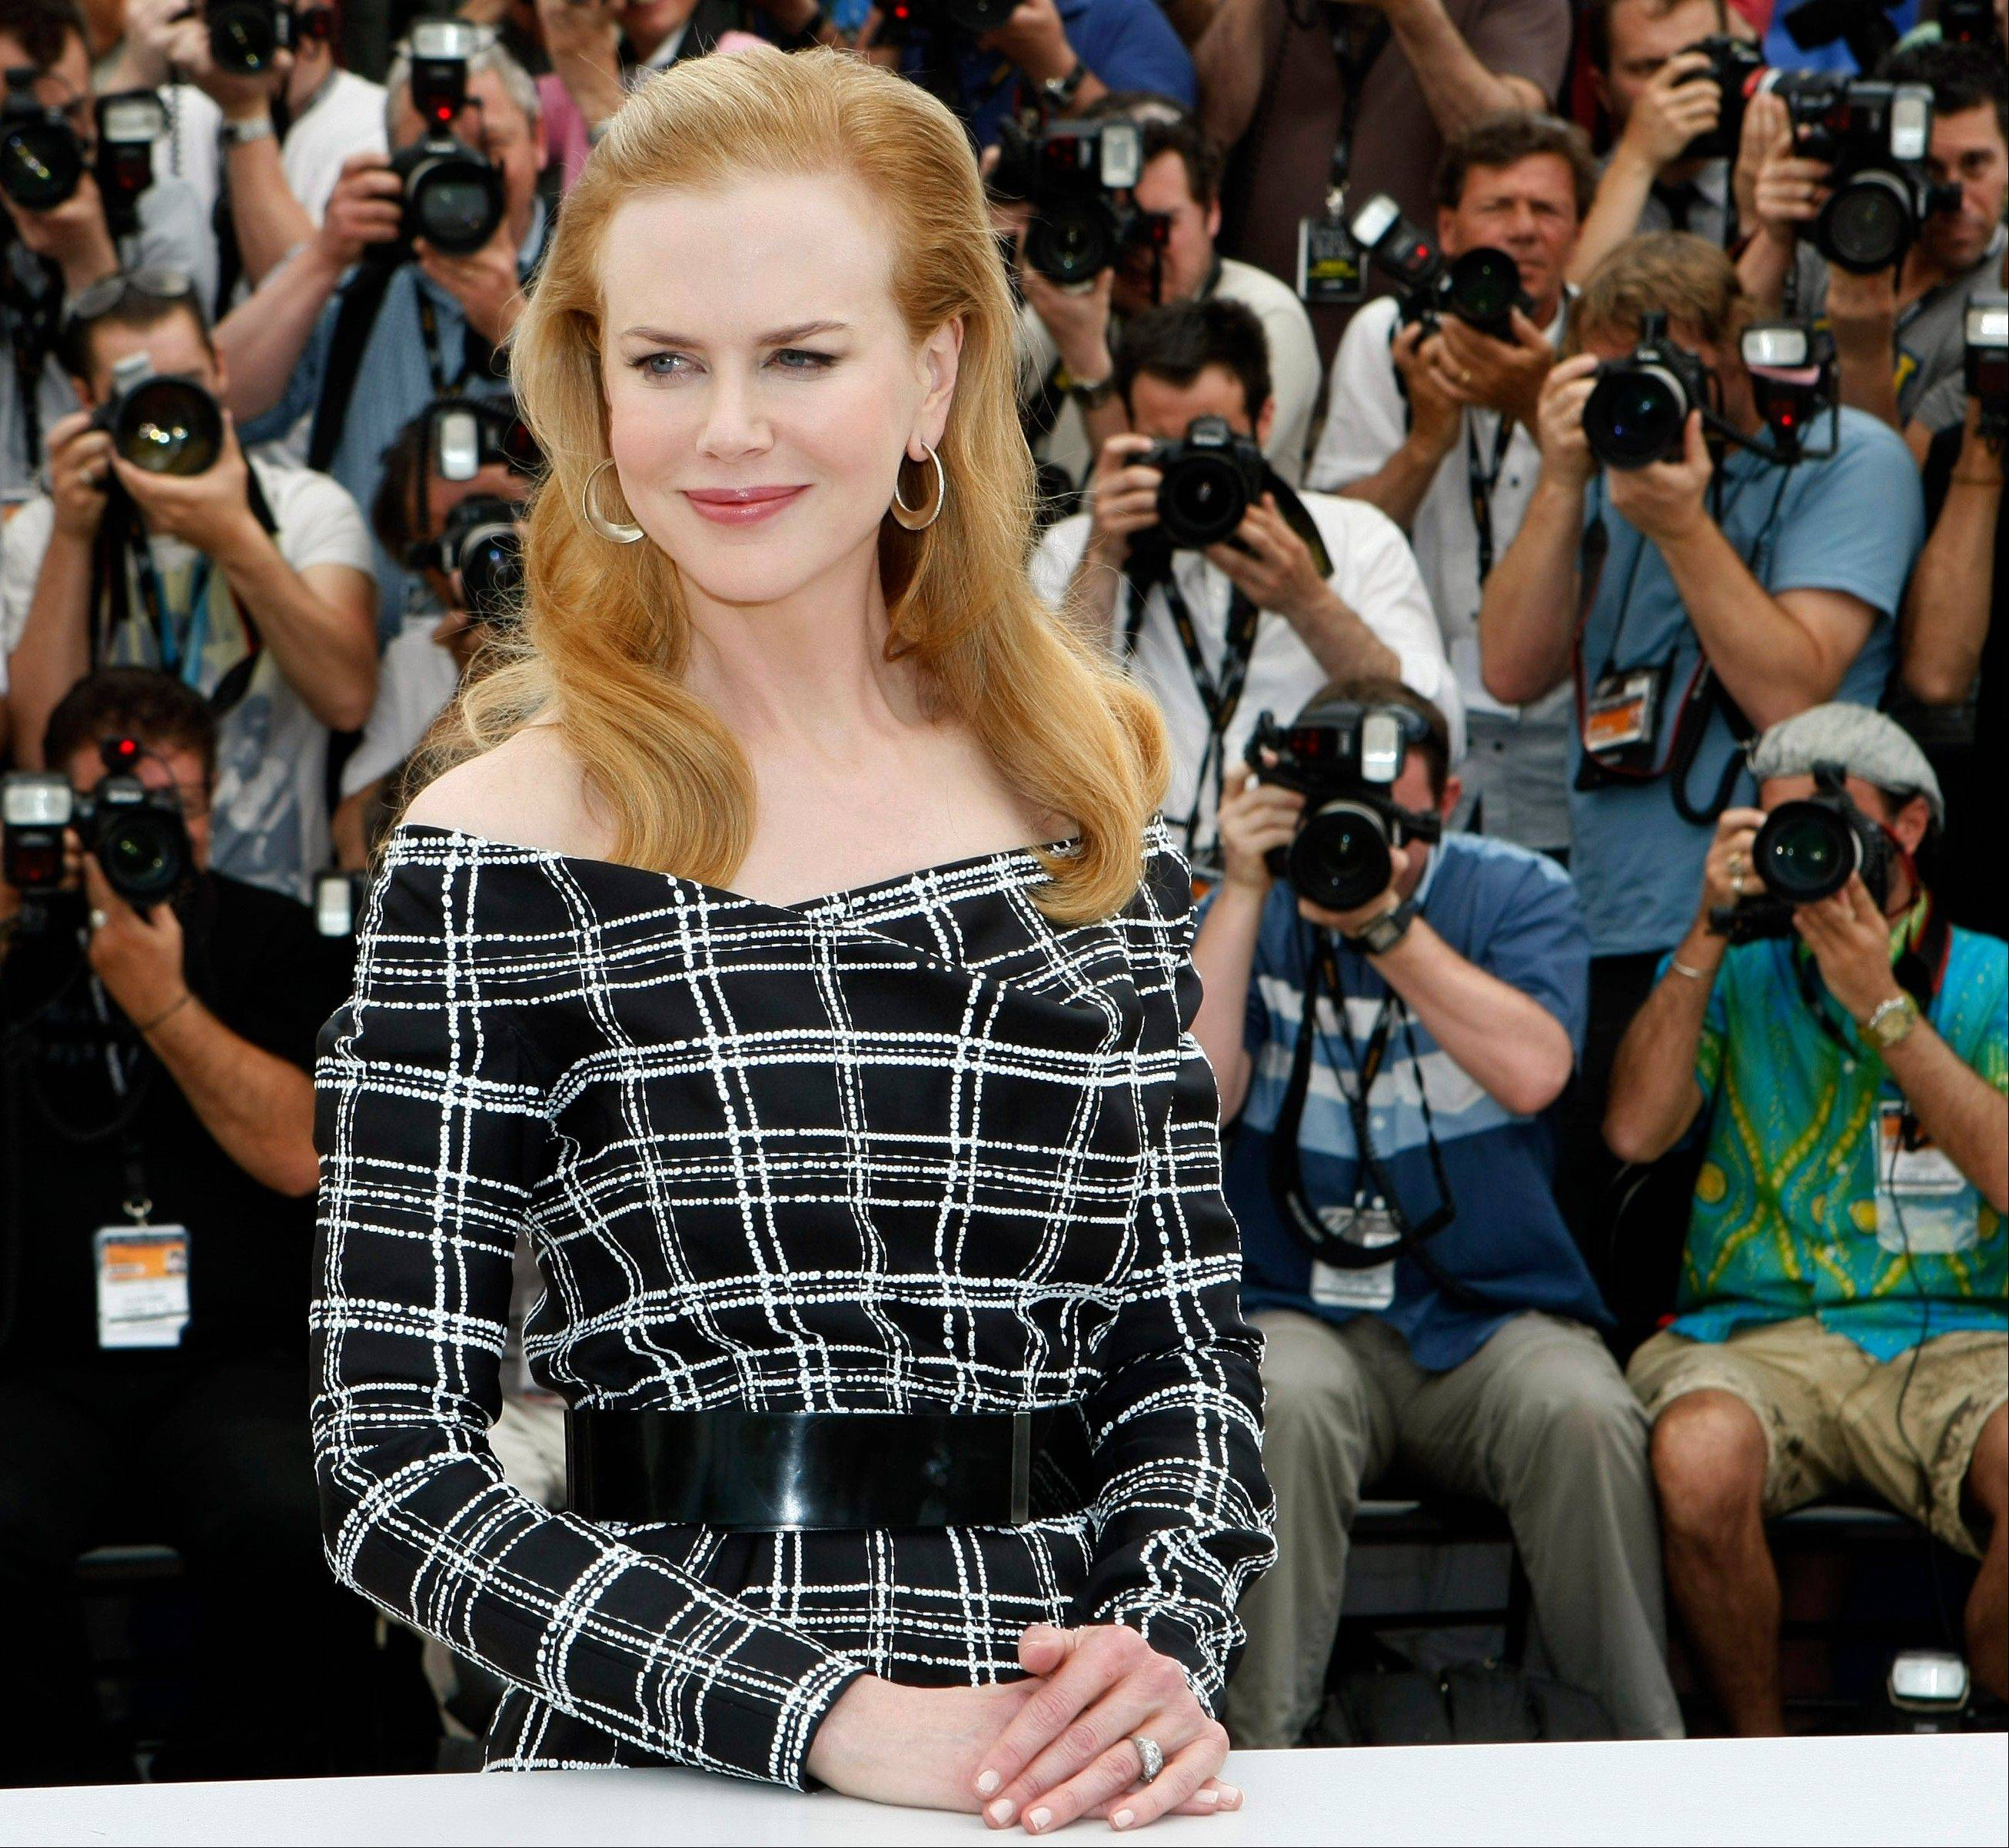 "Actress Nicole Kidman poses for photographers during a photo call for ""Hemingway & Gellhorn"" in Cannes, France, on May 25. At the London Olympics, Kidman is expected at a launch party July 28, while a space-themed bash on Aug. 2 will feature American astronauts Buzz Aldrin, Gene Cernan and Tom Stafford."